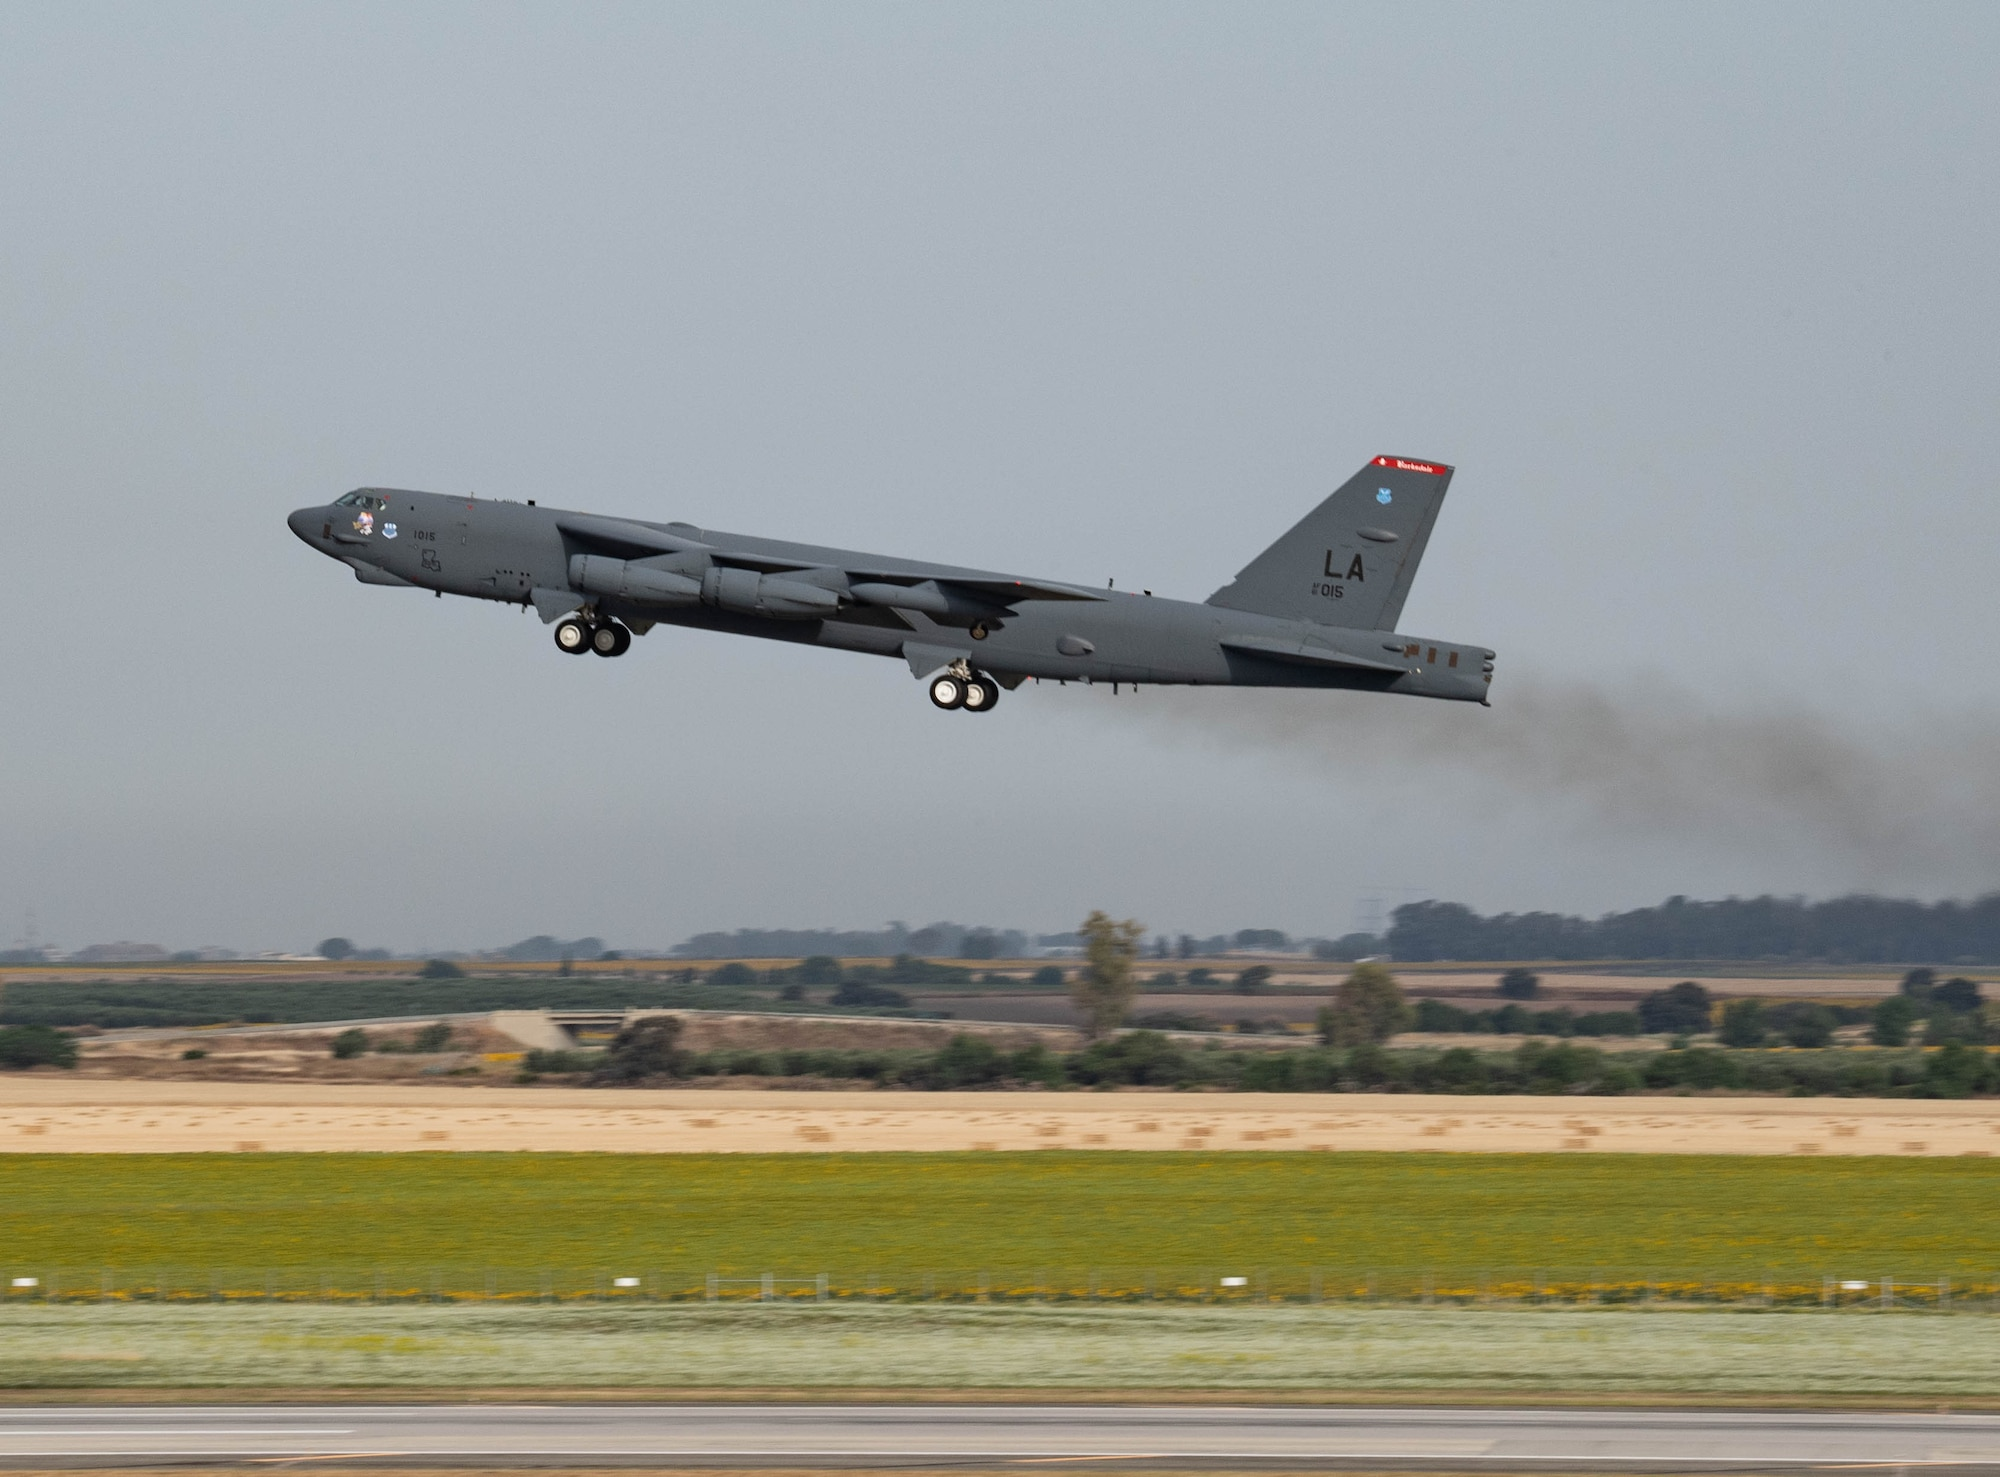 A B-52H Stratofortress assigned to the 2nd Bomb Wing, Barksdale Air Force Base, Louisiana, takes off at Morón Air Base, Spain, May 31, 2021 in support of Bomber Task Force operations. Bomber missions highlight the U.S. military's ability to conduct integration training with partners and allies. (U.S. Air Force photo by 2nd Lt. Aileen Lauer)